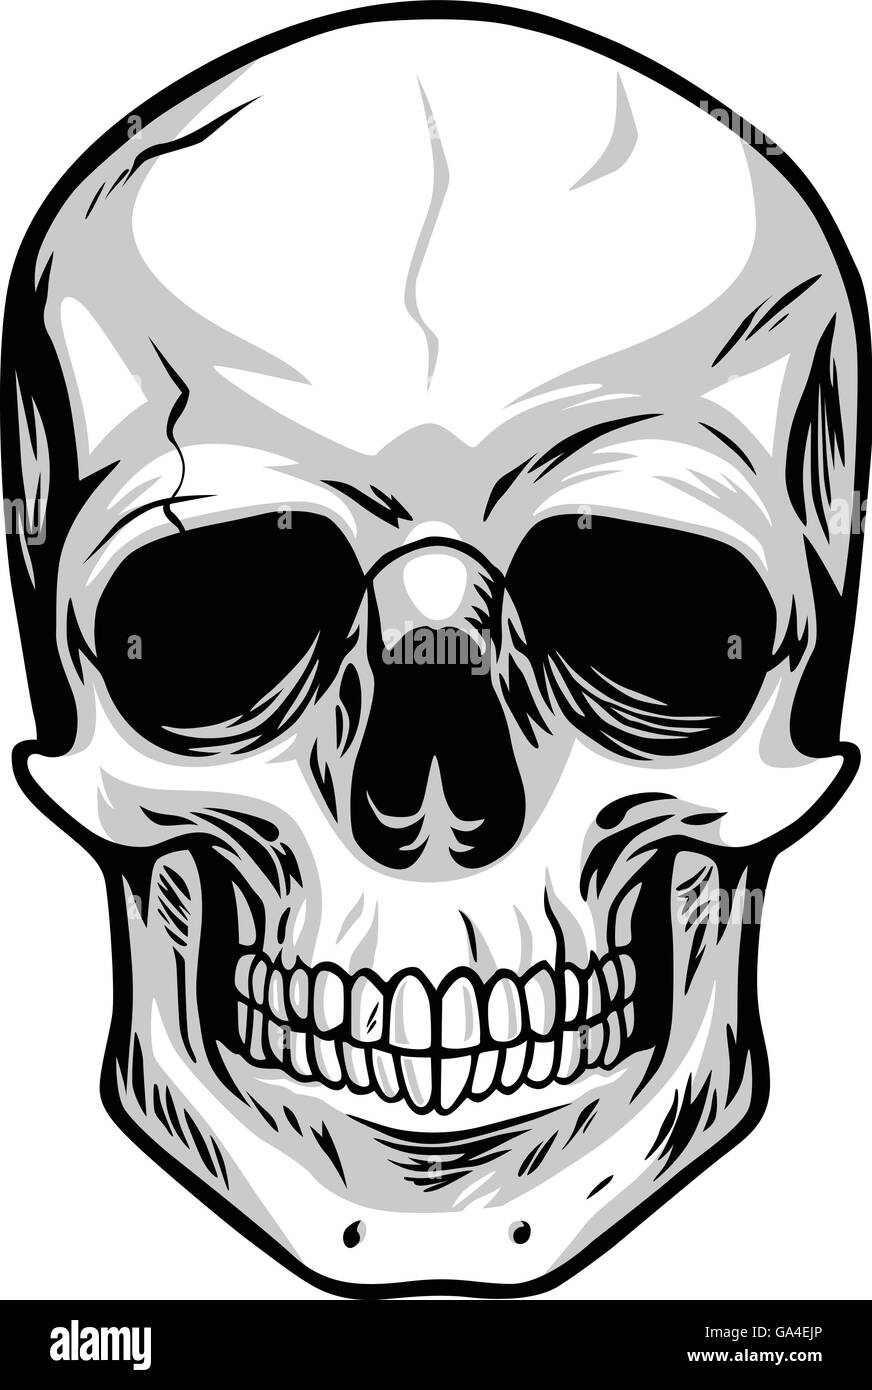 skull vector art illustrations stock vector art illustration rh alamy com free skull vector art skull vector free for commercial use